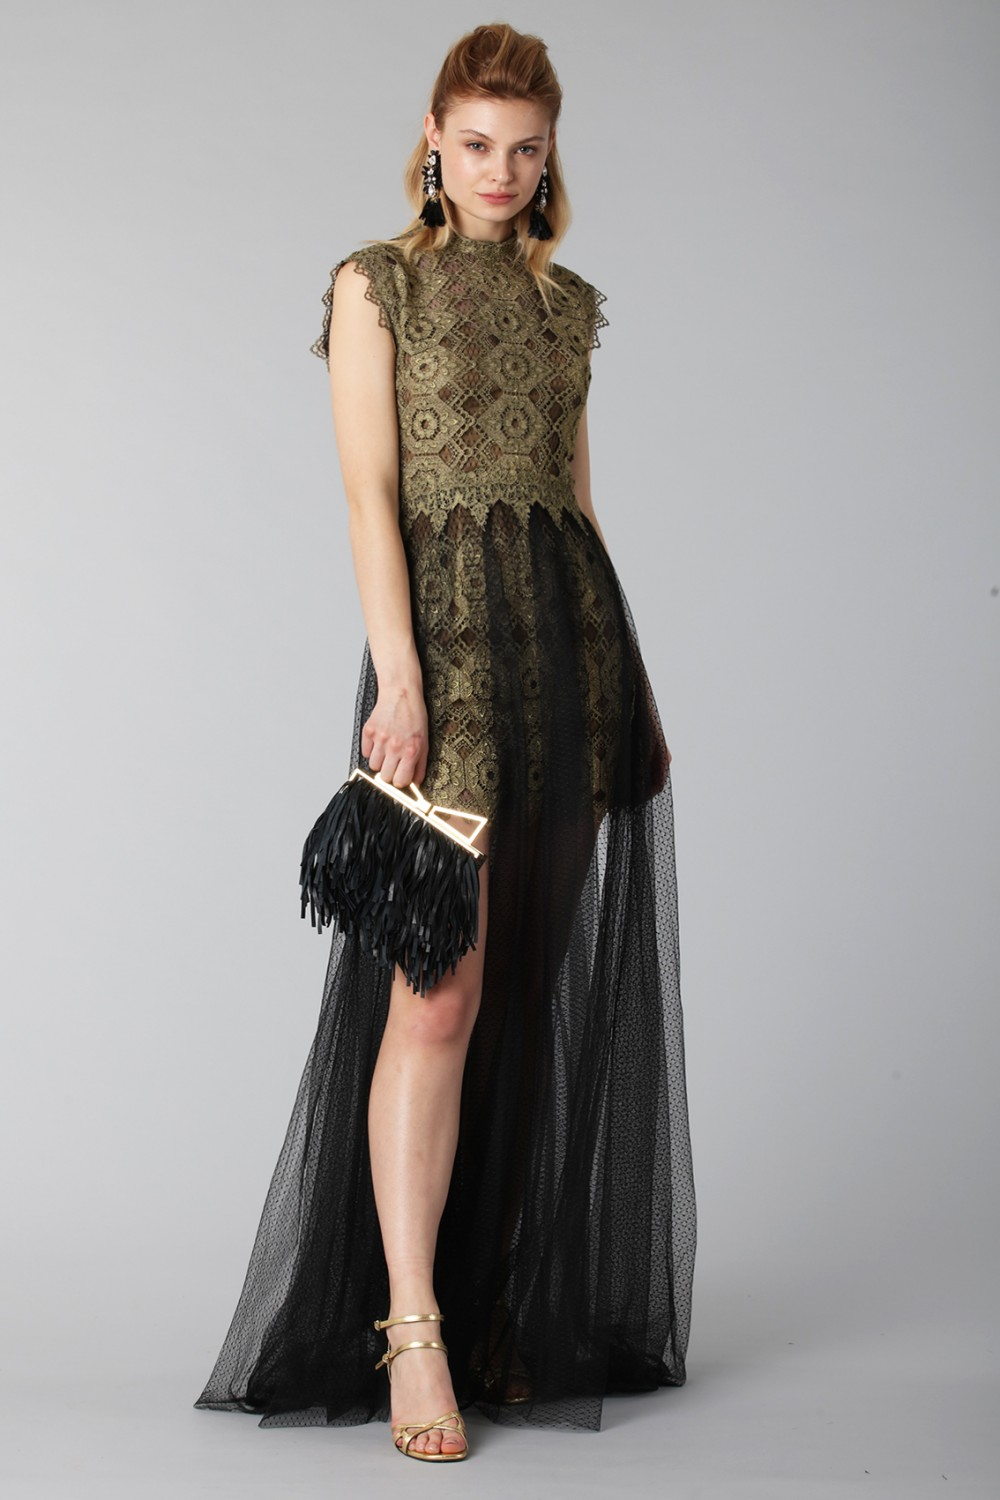 Abito in pizzo con gonna in tulle